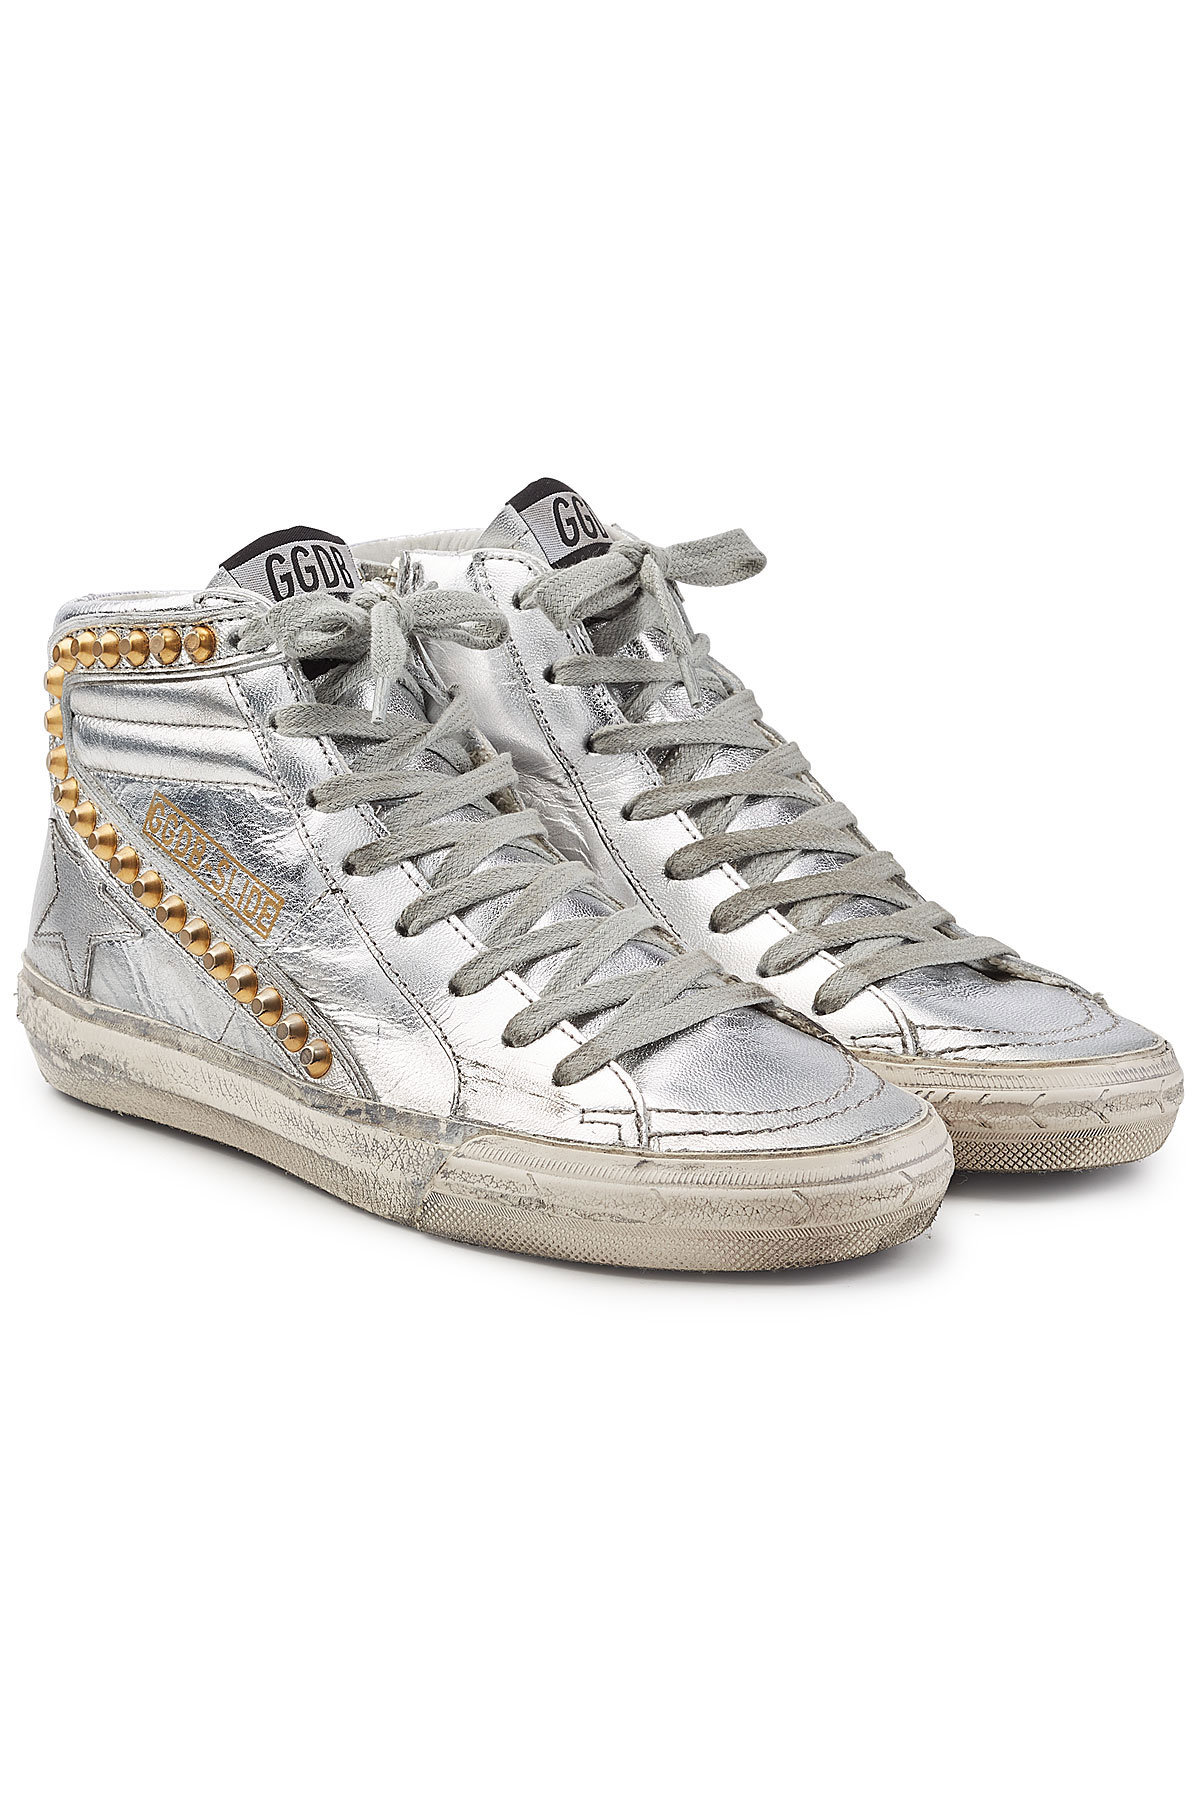 Slide Metallic Leather Sneakers with Studs | GOLDEN GOOSE DELUXE BRAND